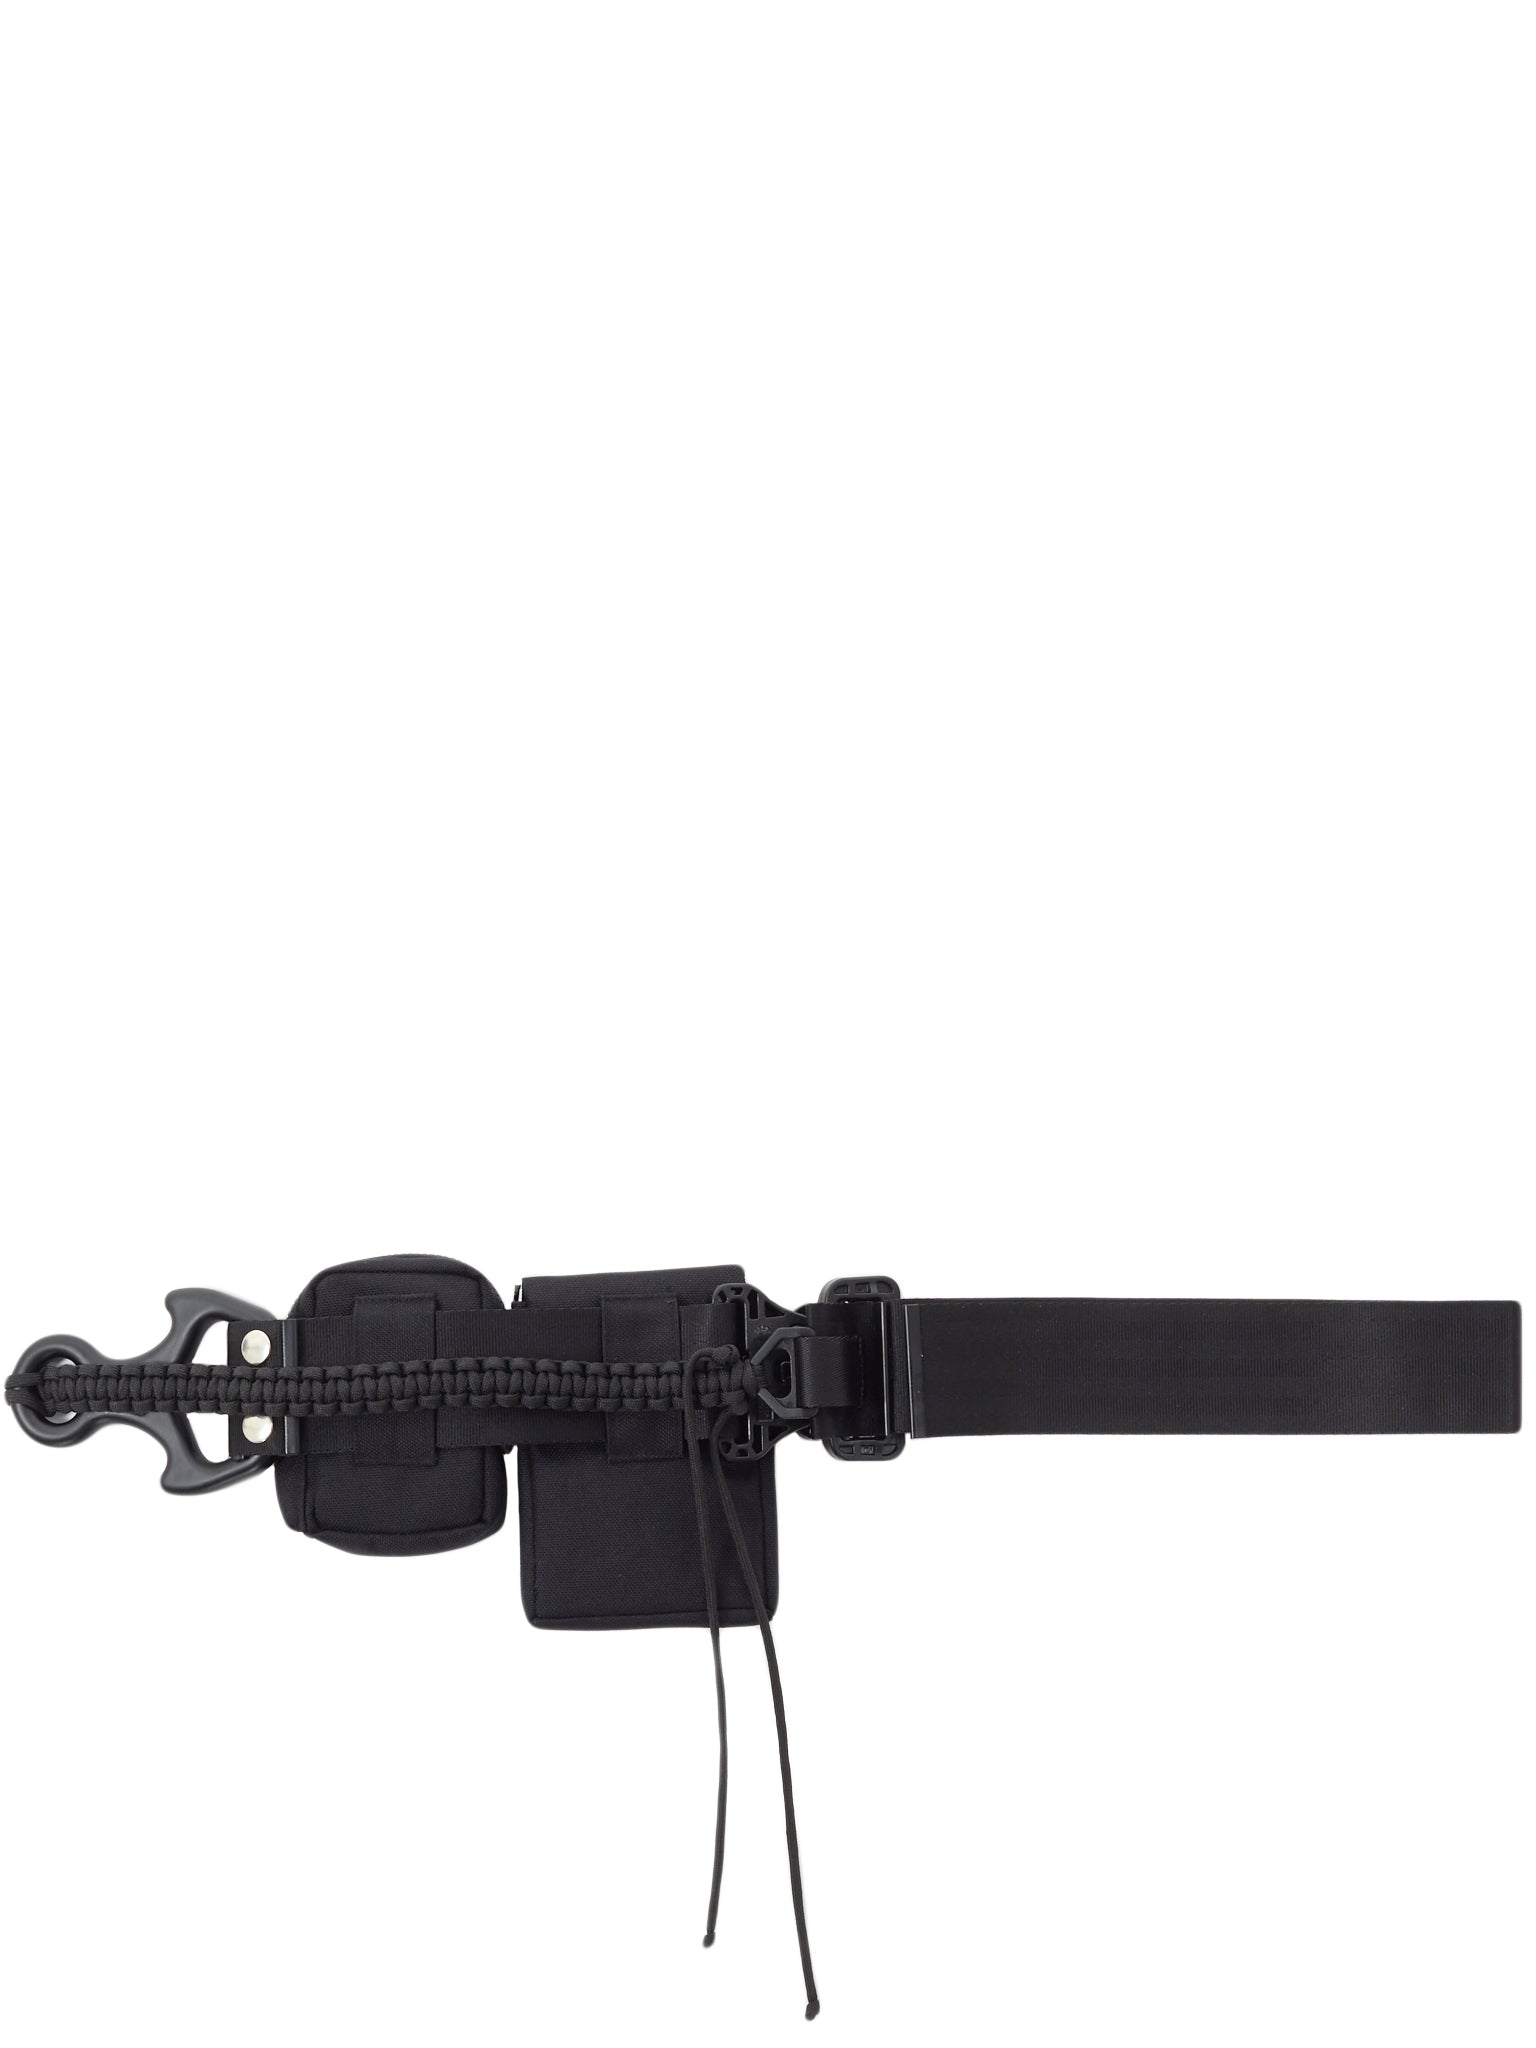 Paracord Cross Bag (CBG2K-BLACK)